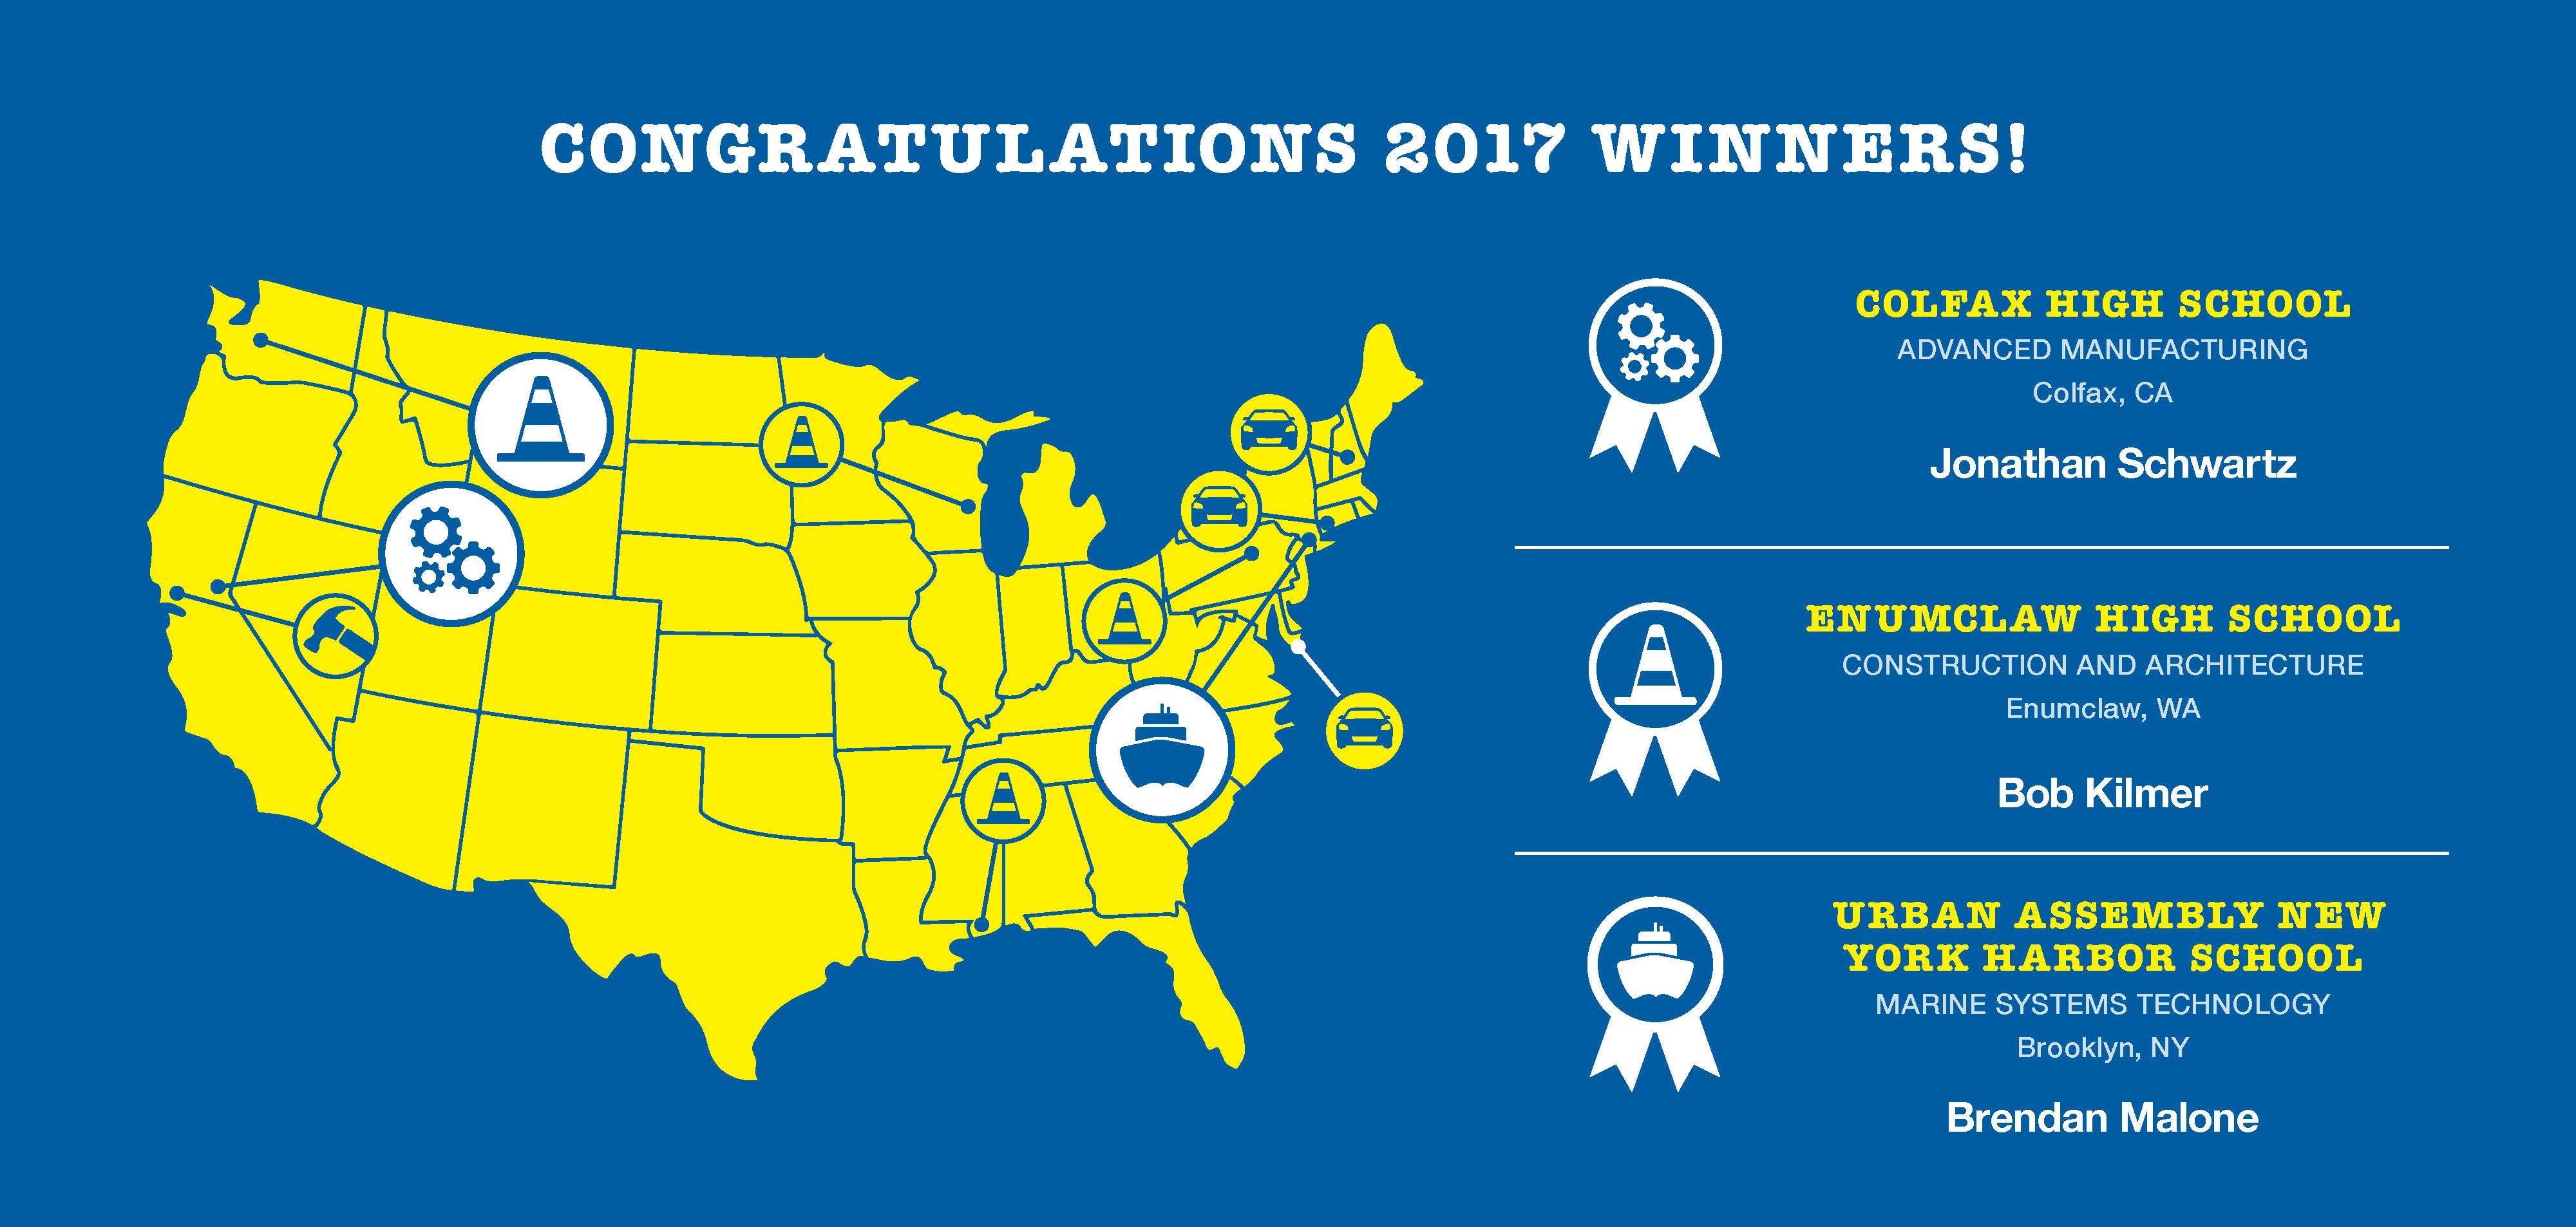 10 skilled trades teachers across us win 510000 for harbor 10 skilled trades teachers across us win 510000 for harbor freight tools for schools prize for teaching excellence firstplace prizes awarded to public 1betcityfo Images